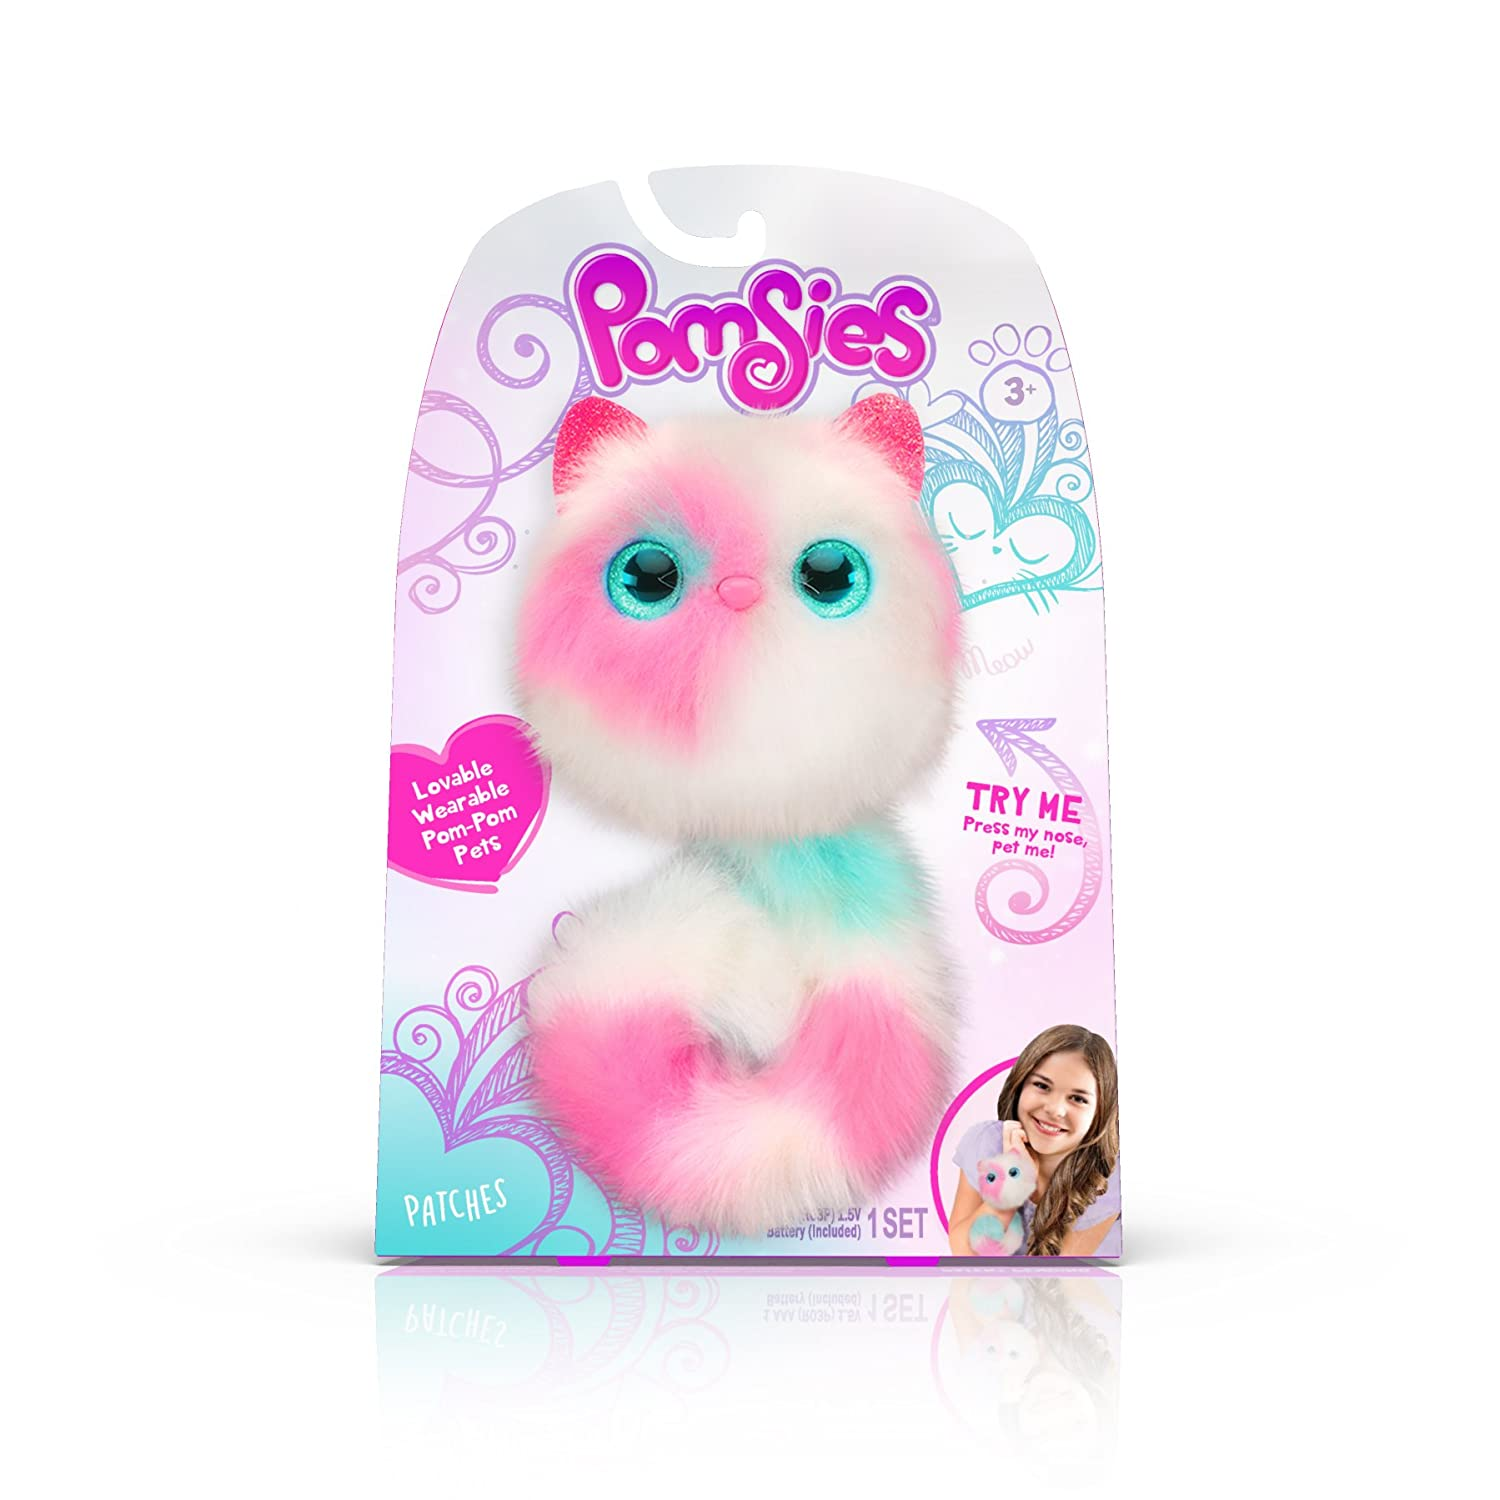 Pomsies Patches Plush Interactive Toys, White/Pink/Mint, One Size Skyrocket 1883